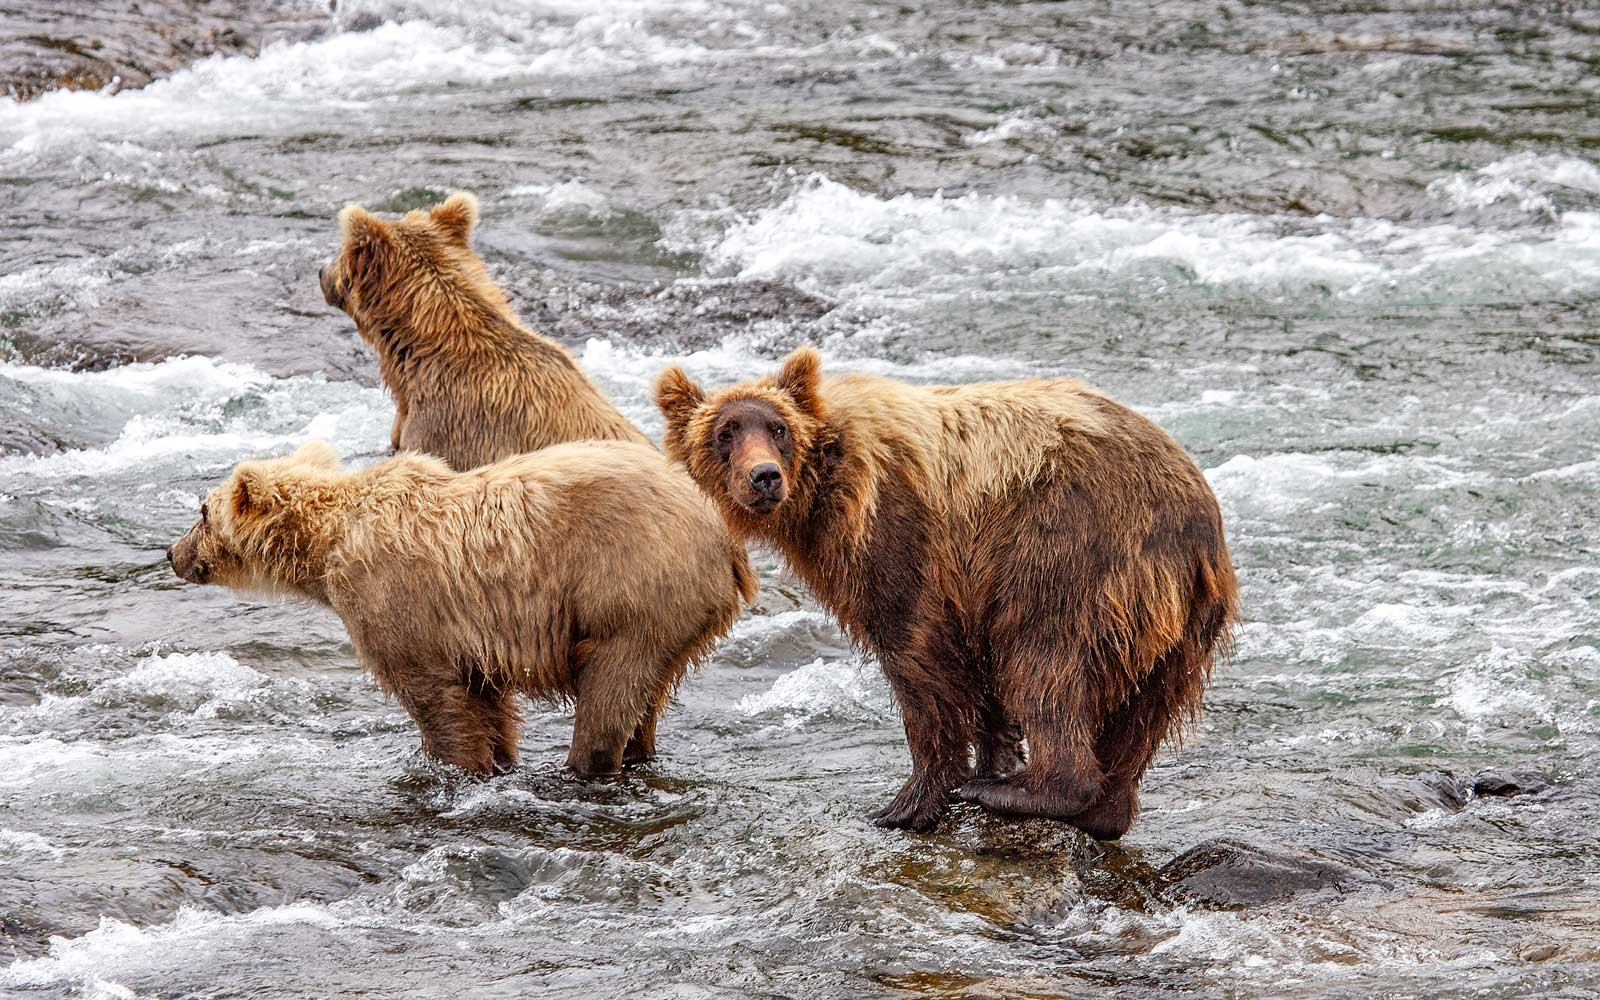 Grizzly bears fishing for salmon at Brooks Falls, Katmai NP, Alaska